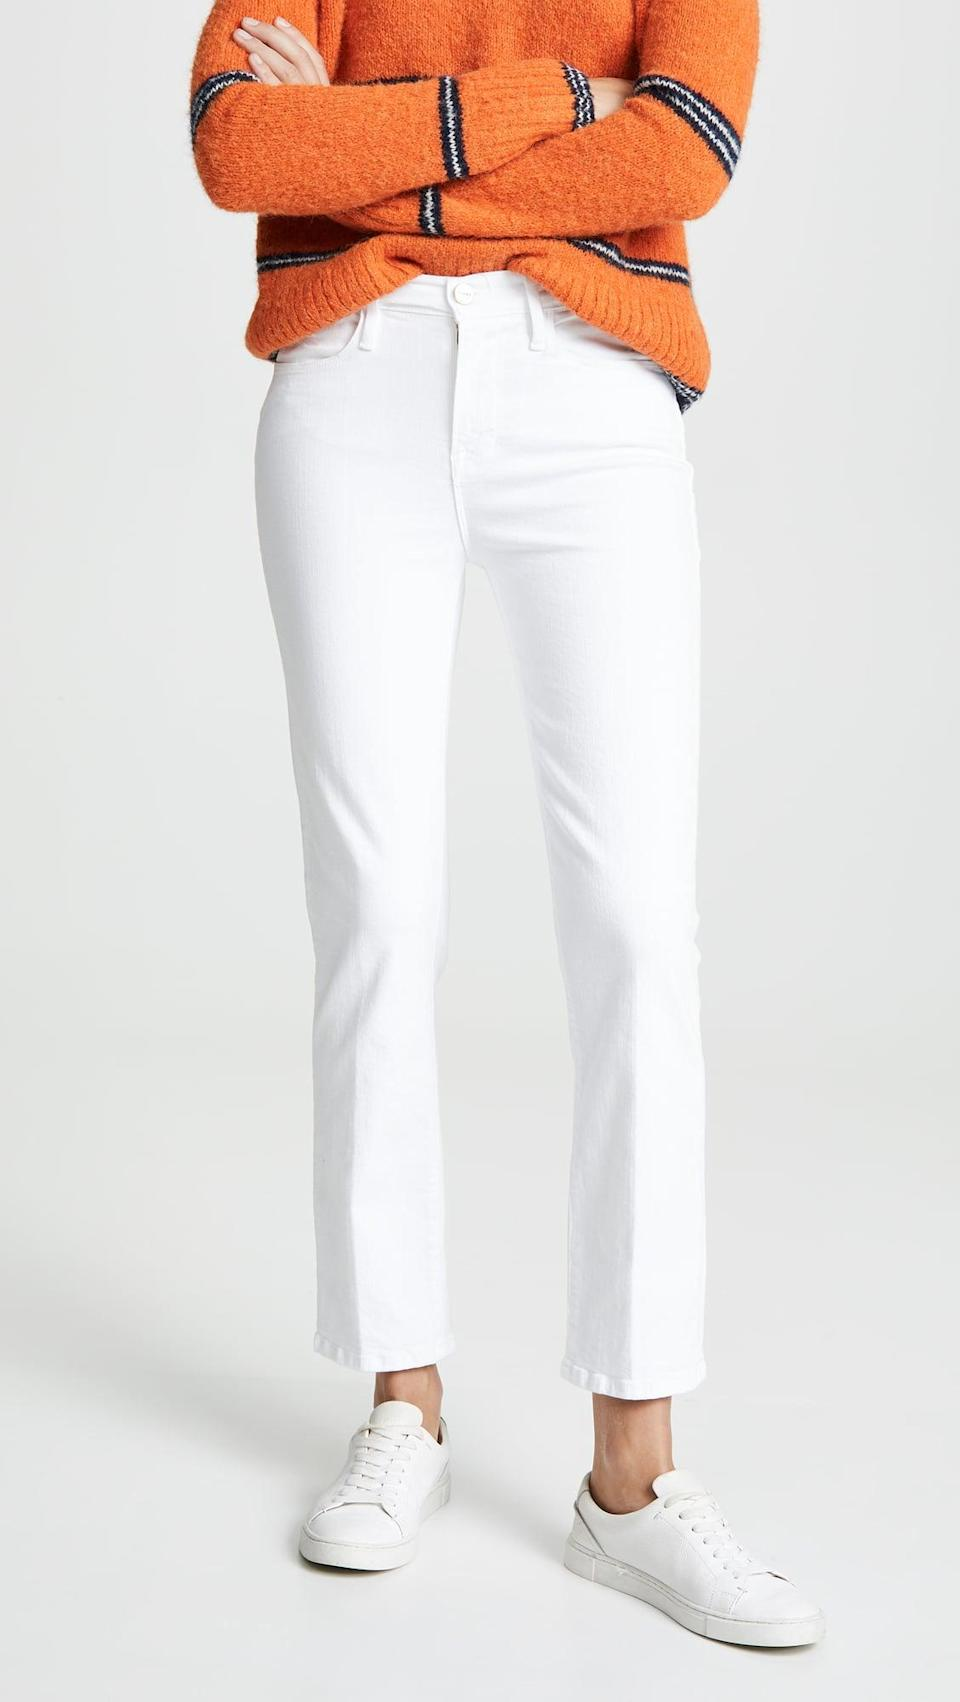 <p>Grab these <span>Frame Le High Straight Jeans</span> ($199) while they're still in stock. There's something so chic about white jeans for fall; we love a tonal look.</p>